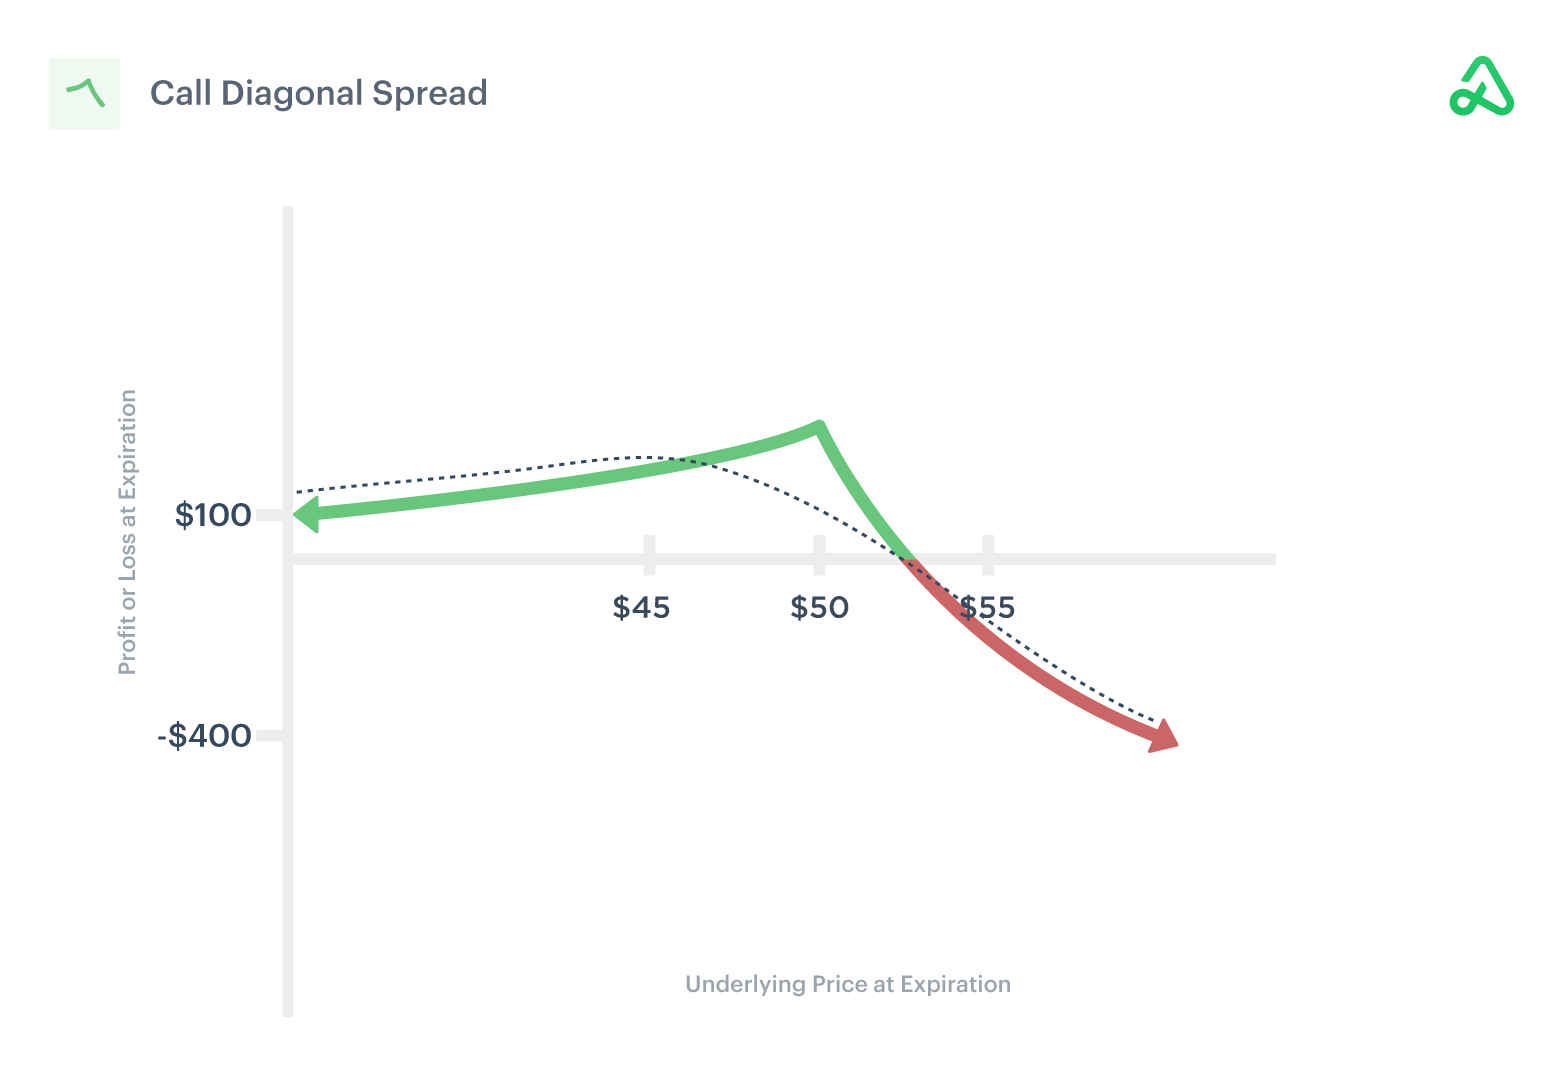 Image of call diagonal spread payoff diagram showing potential profit and loss outcomes